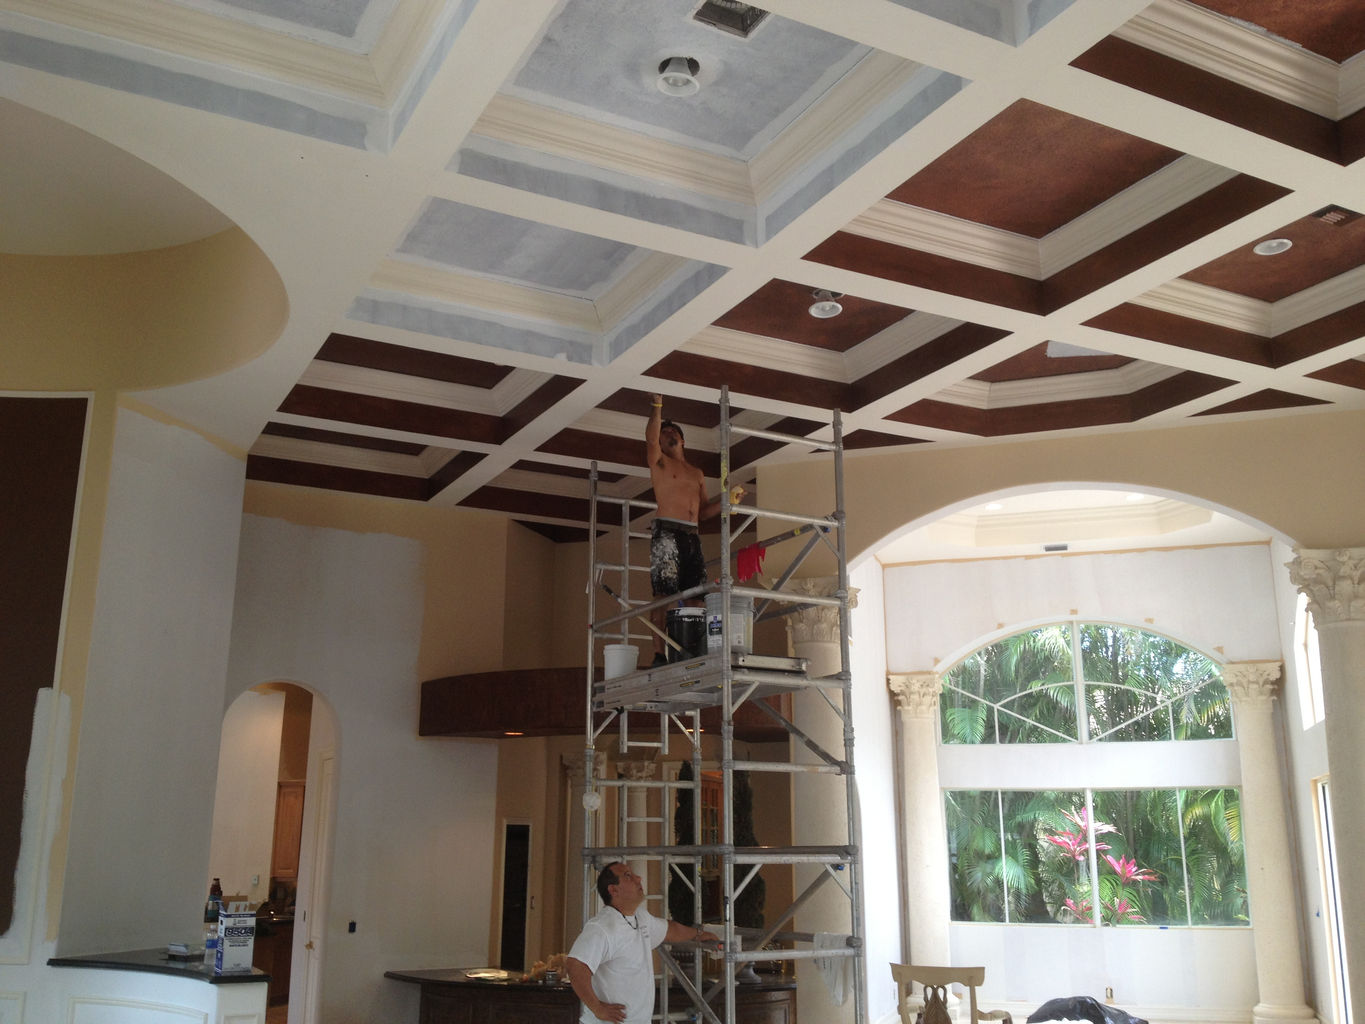 House painting wallpaper installation 786 389 3914 for House painting miami